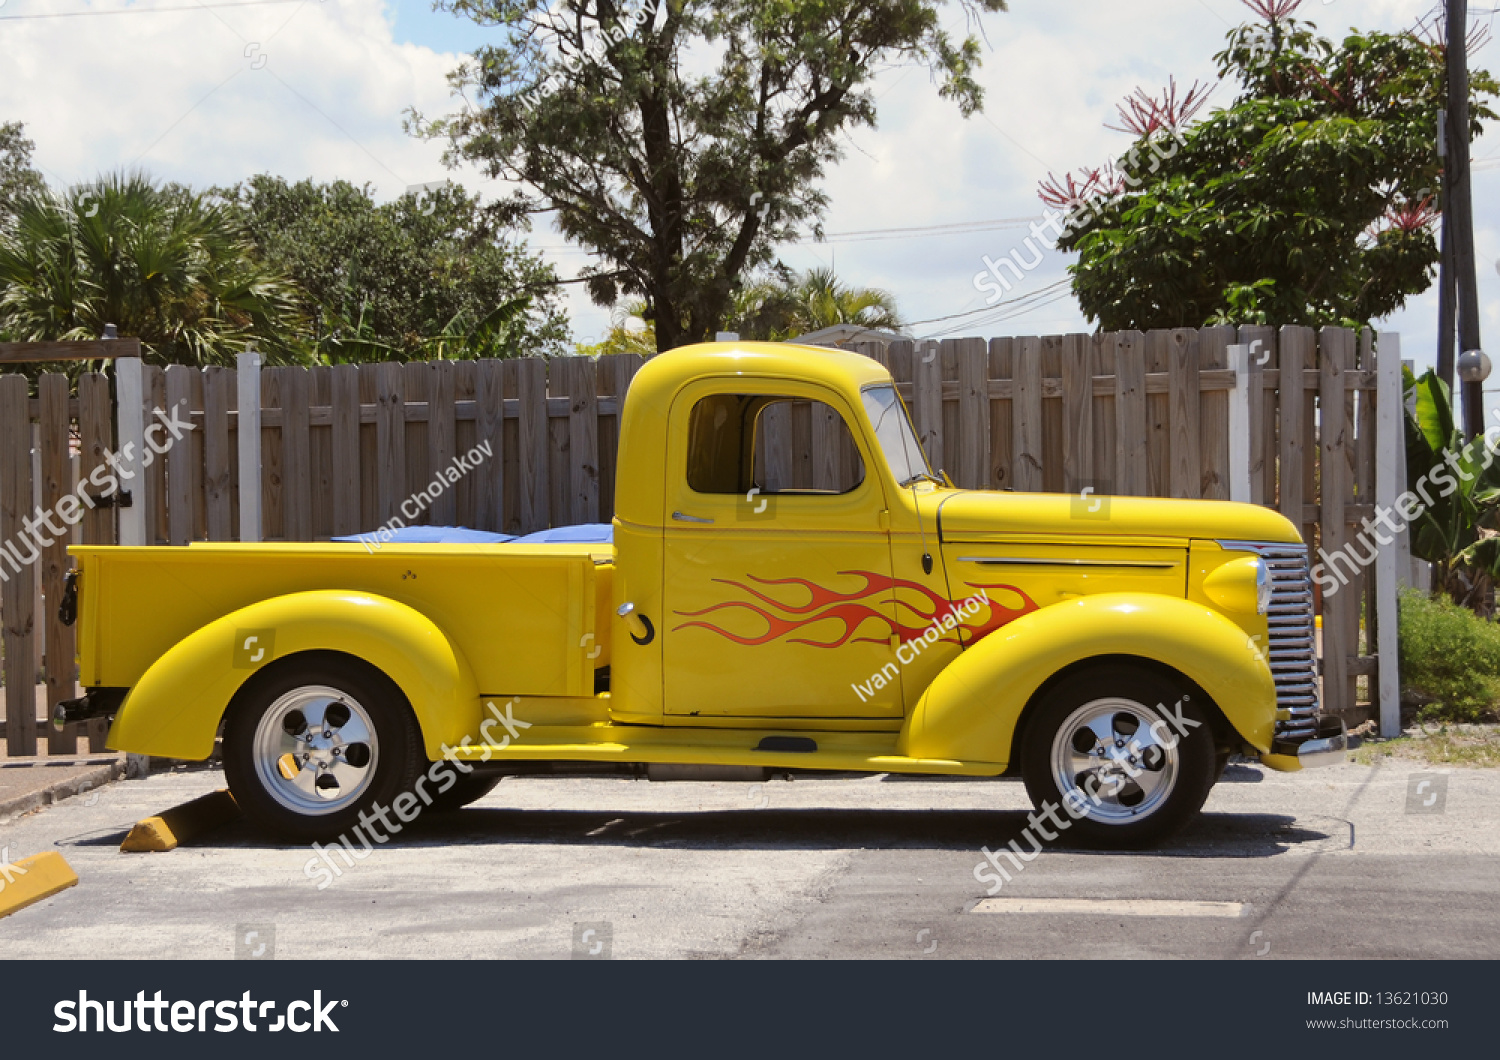 small pickup truck bright yellow color stock photo 13621030 shutterstock. Black Bedroom Furniture Sets. Home Design Ideas